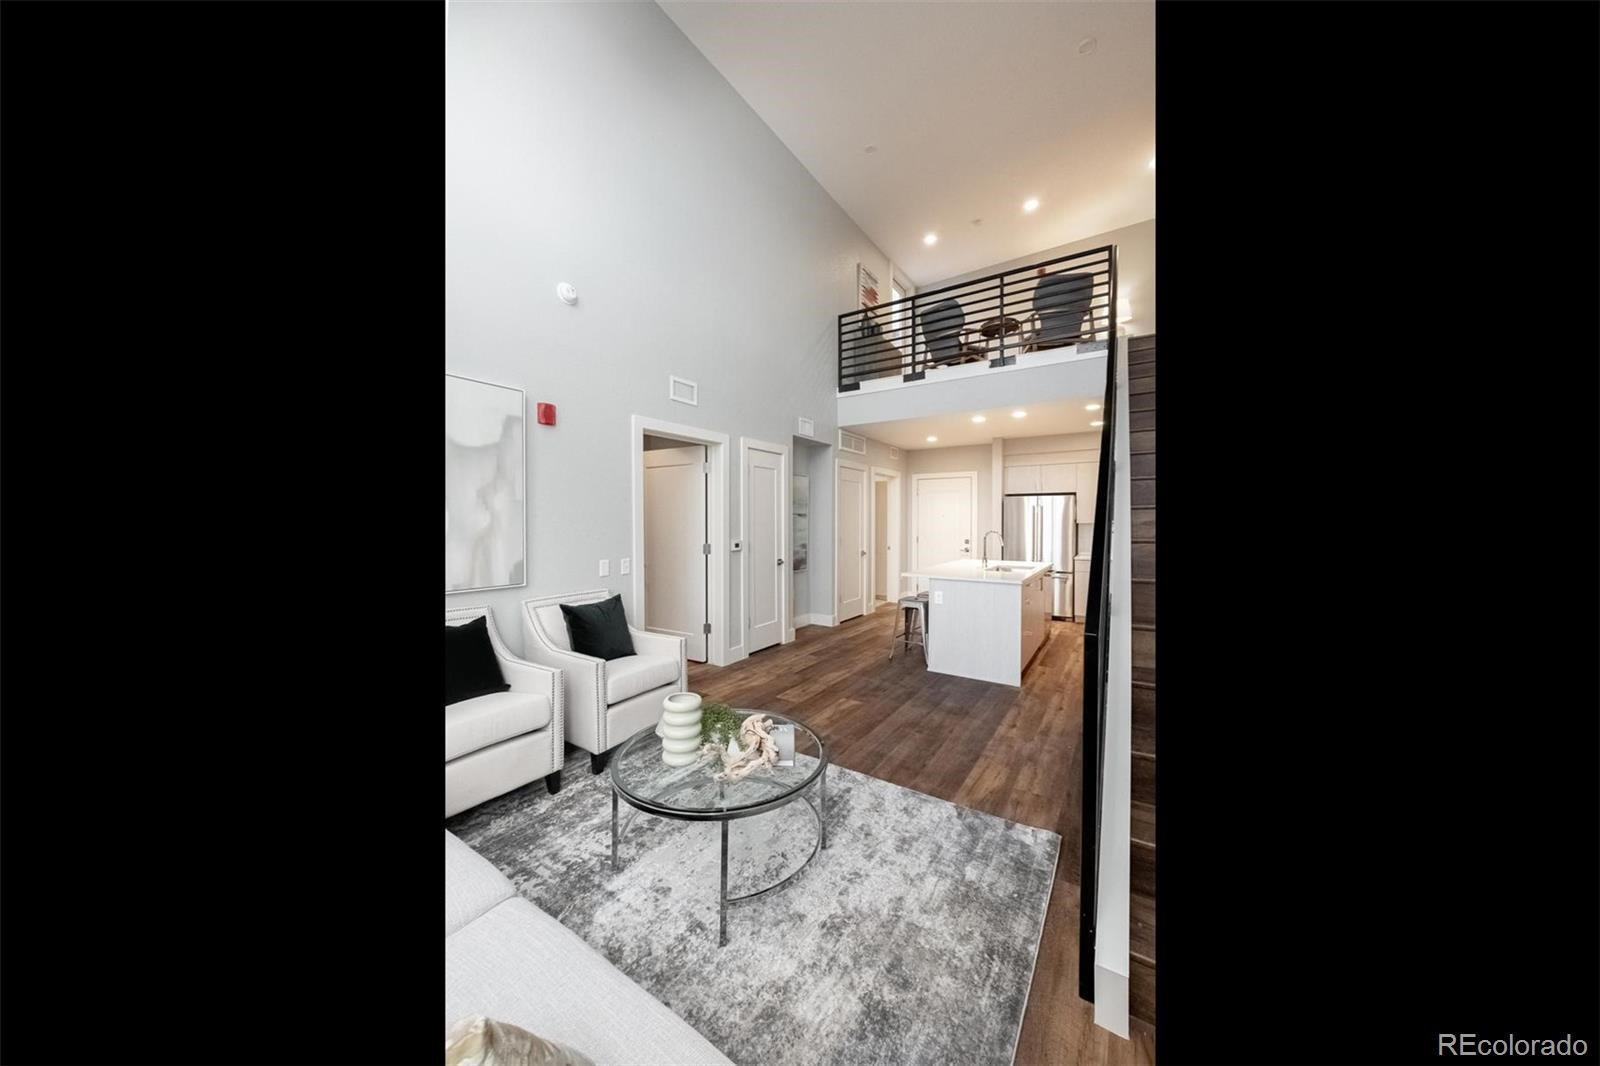 MLS# 9279302 - 11 - 431 E Bayaud Avenue #307, Denver, CO 80209